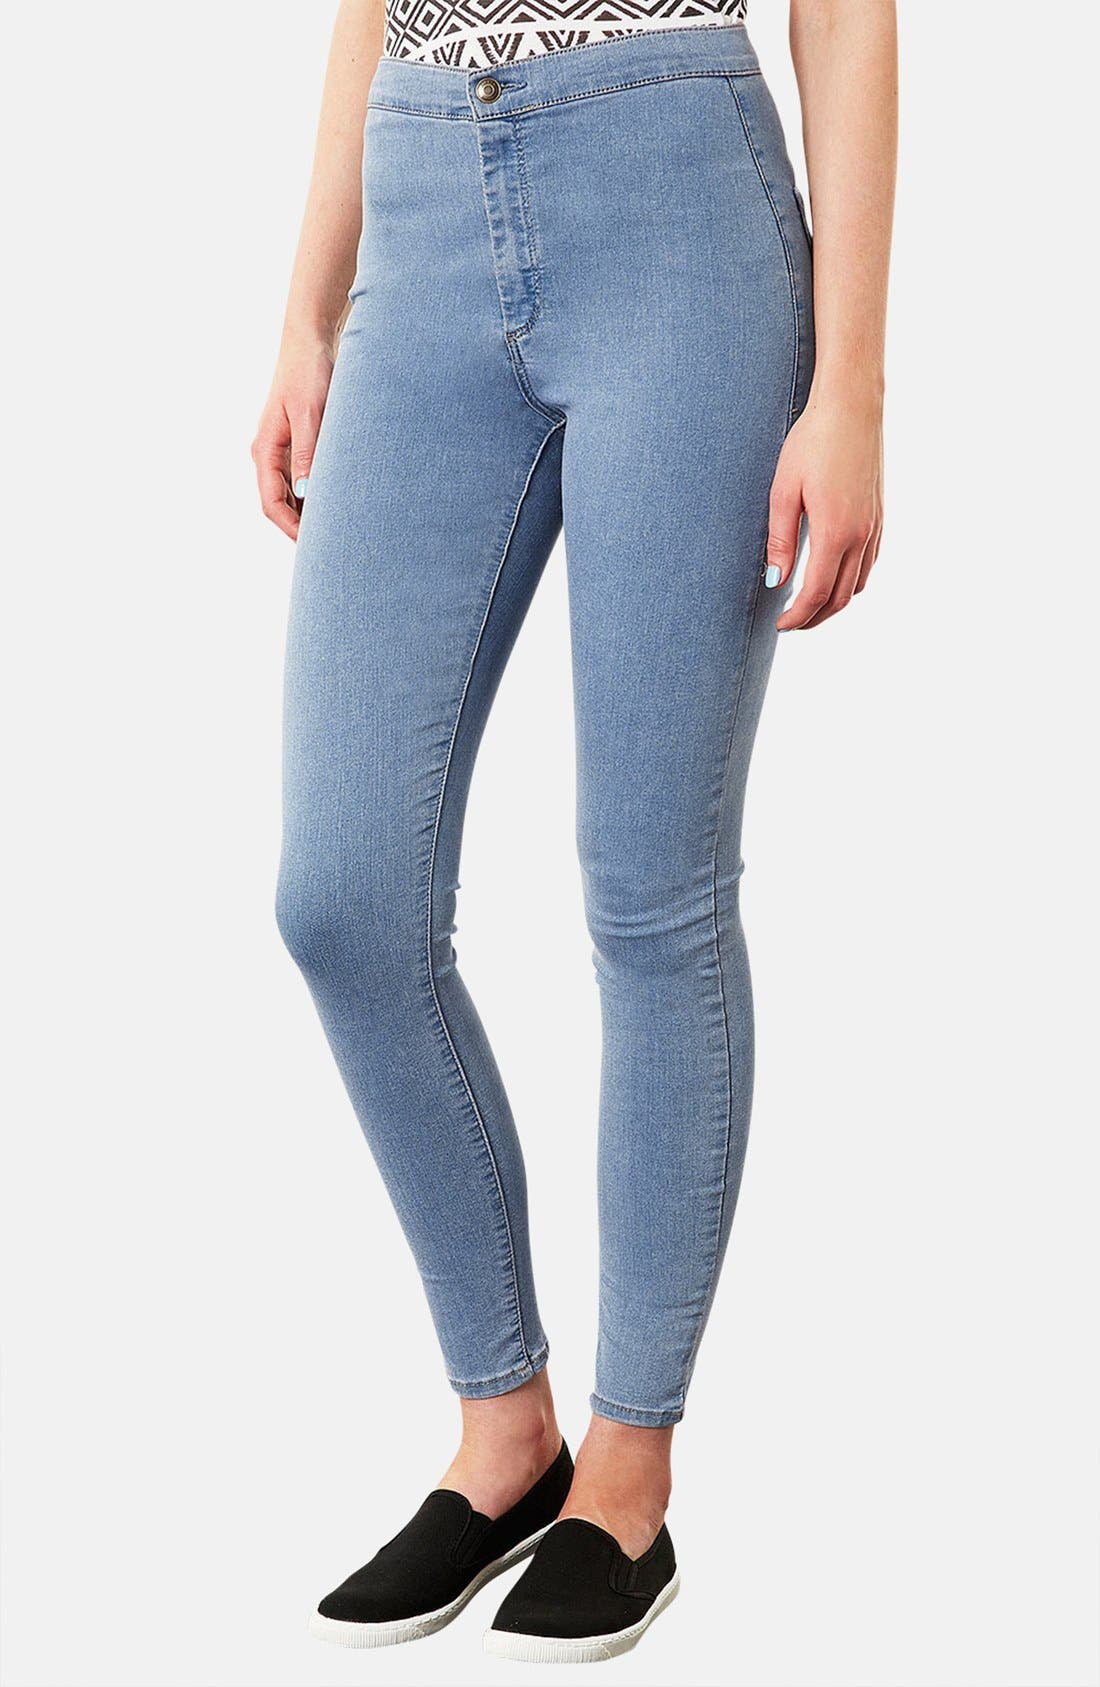 Alternate Image 1 Selected - Topshop Moto 'Joni' High Rise Skinny Jeans (Mid Stone)